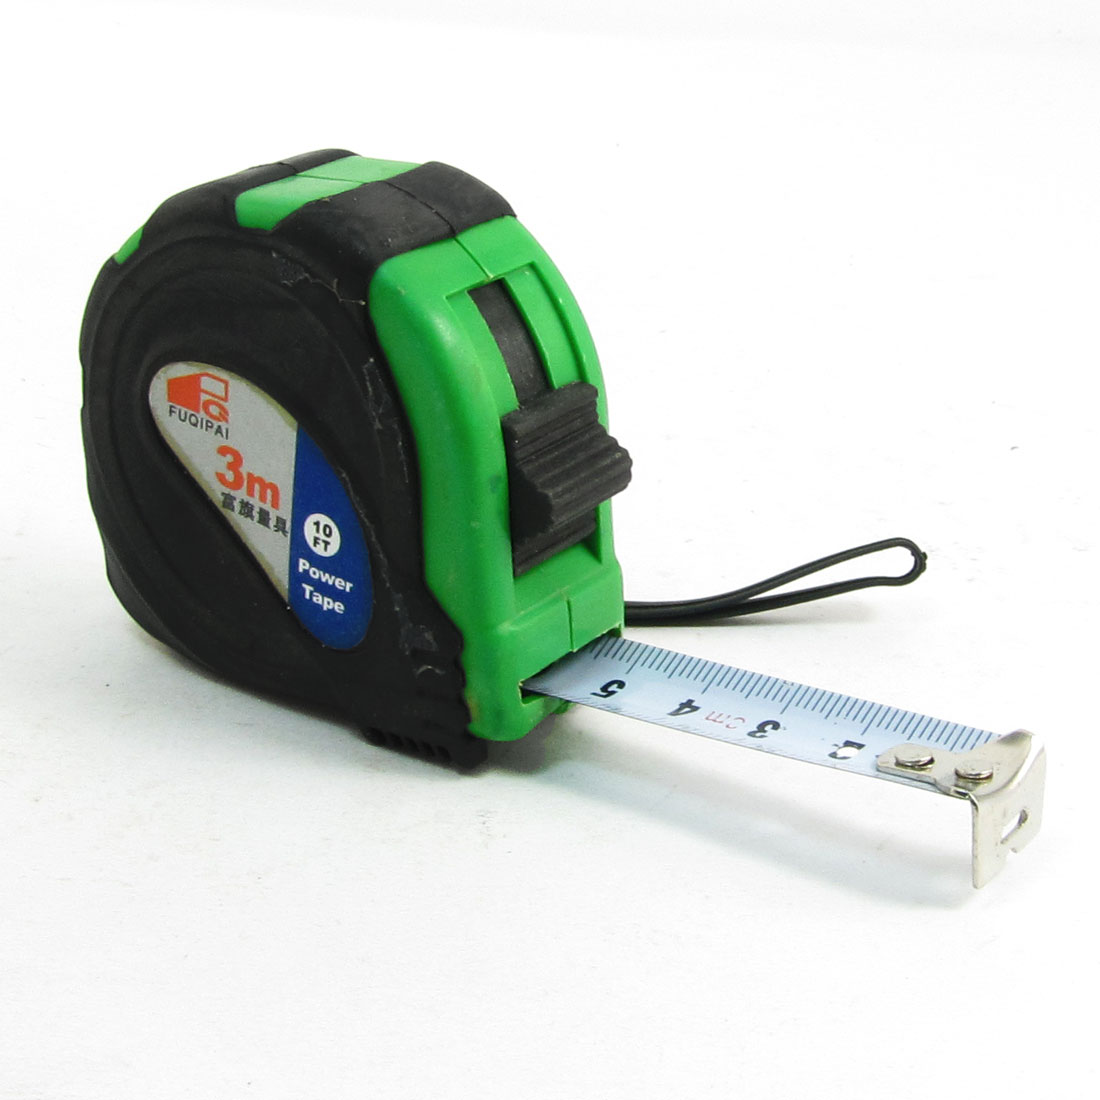 Green Black Case Retractable Steel Measuring Band Tape 3 Meter Length